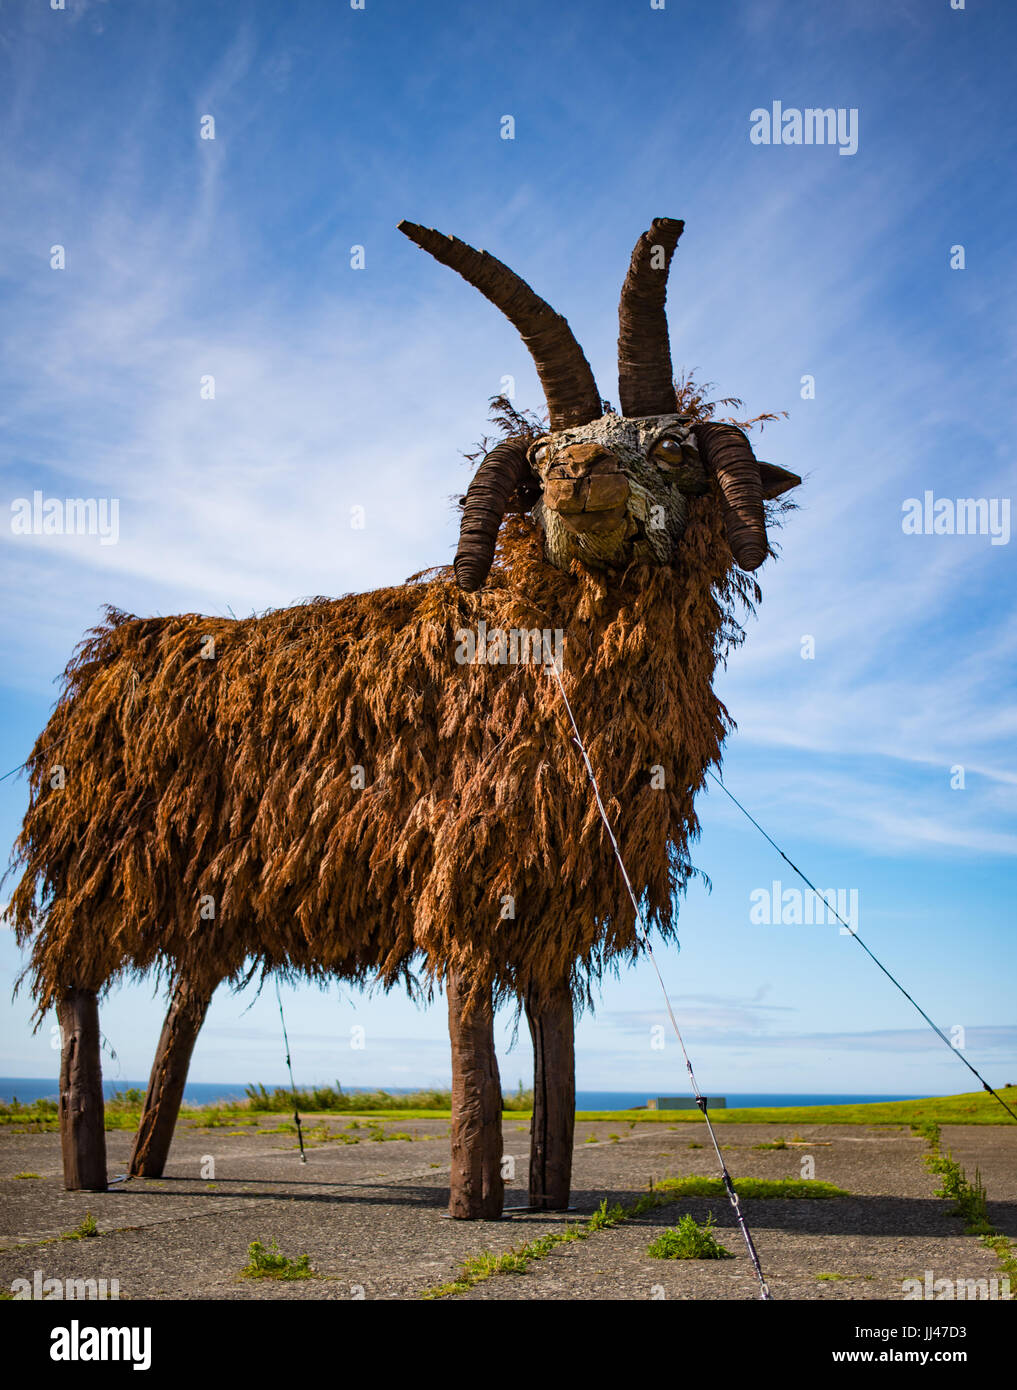 Manx Loaghtan sheep made of wood and conifer branches - Stock Image